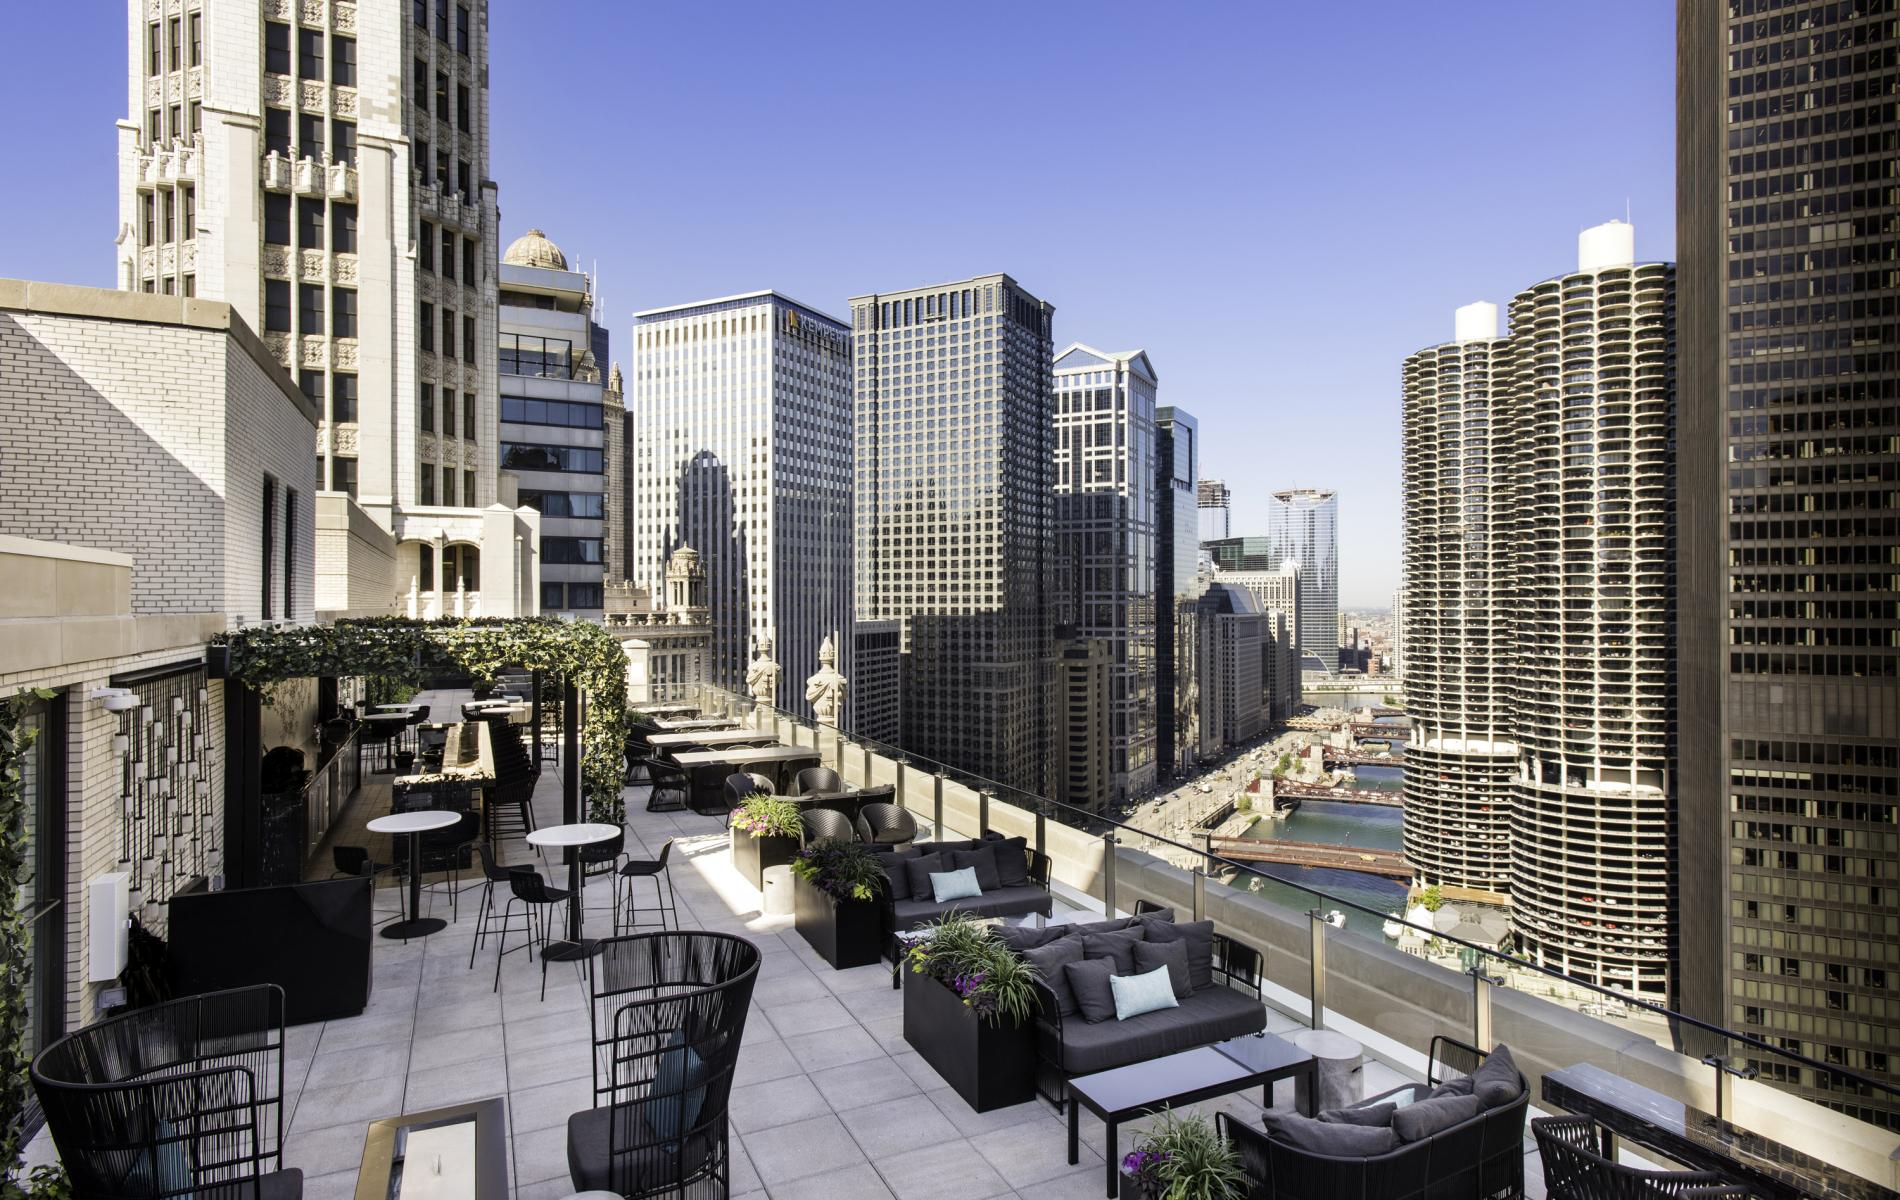 London House Chicago Rooftop Bar